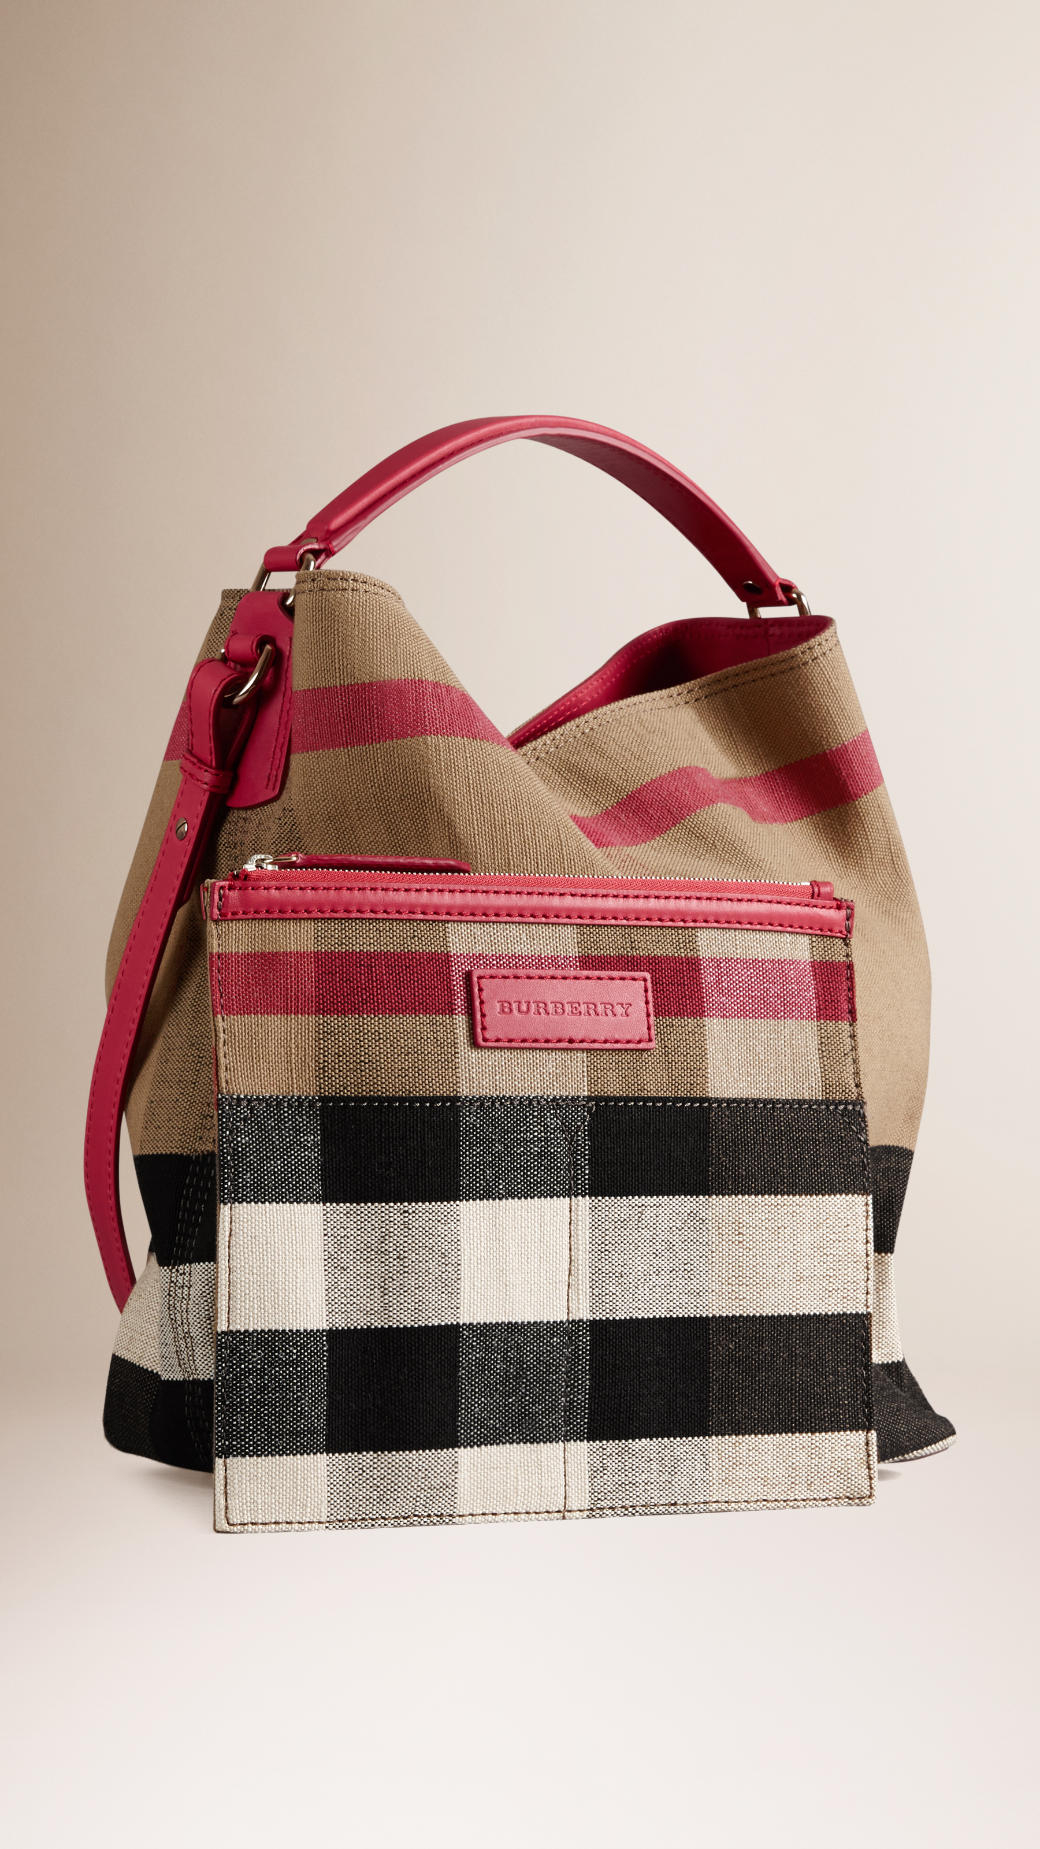 9c572cbcee36 Lyst - Burberry The Medium Ashby Canvas Check And Leather Bag in Pink